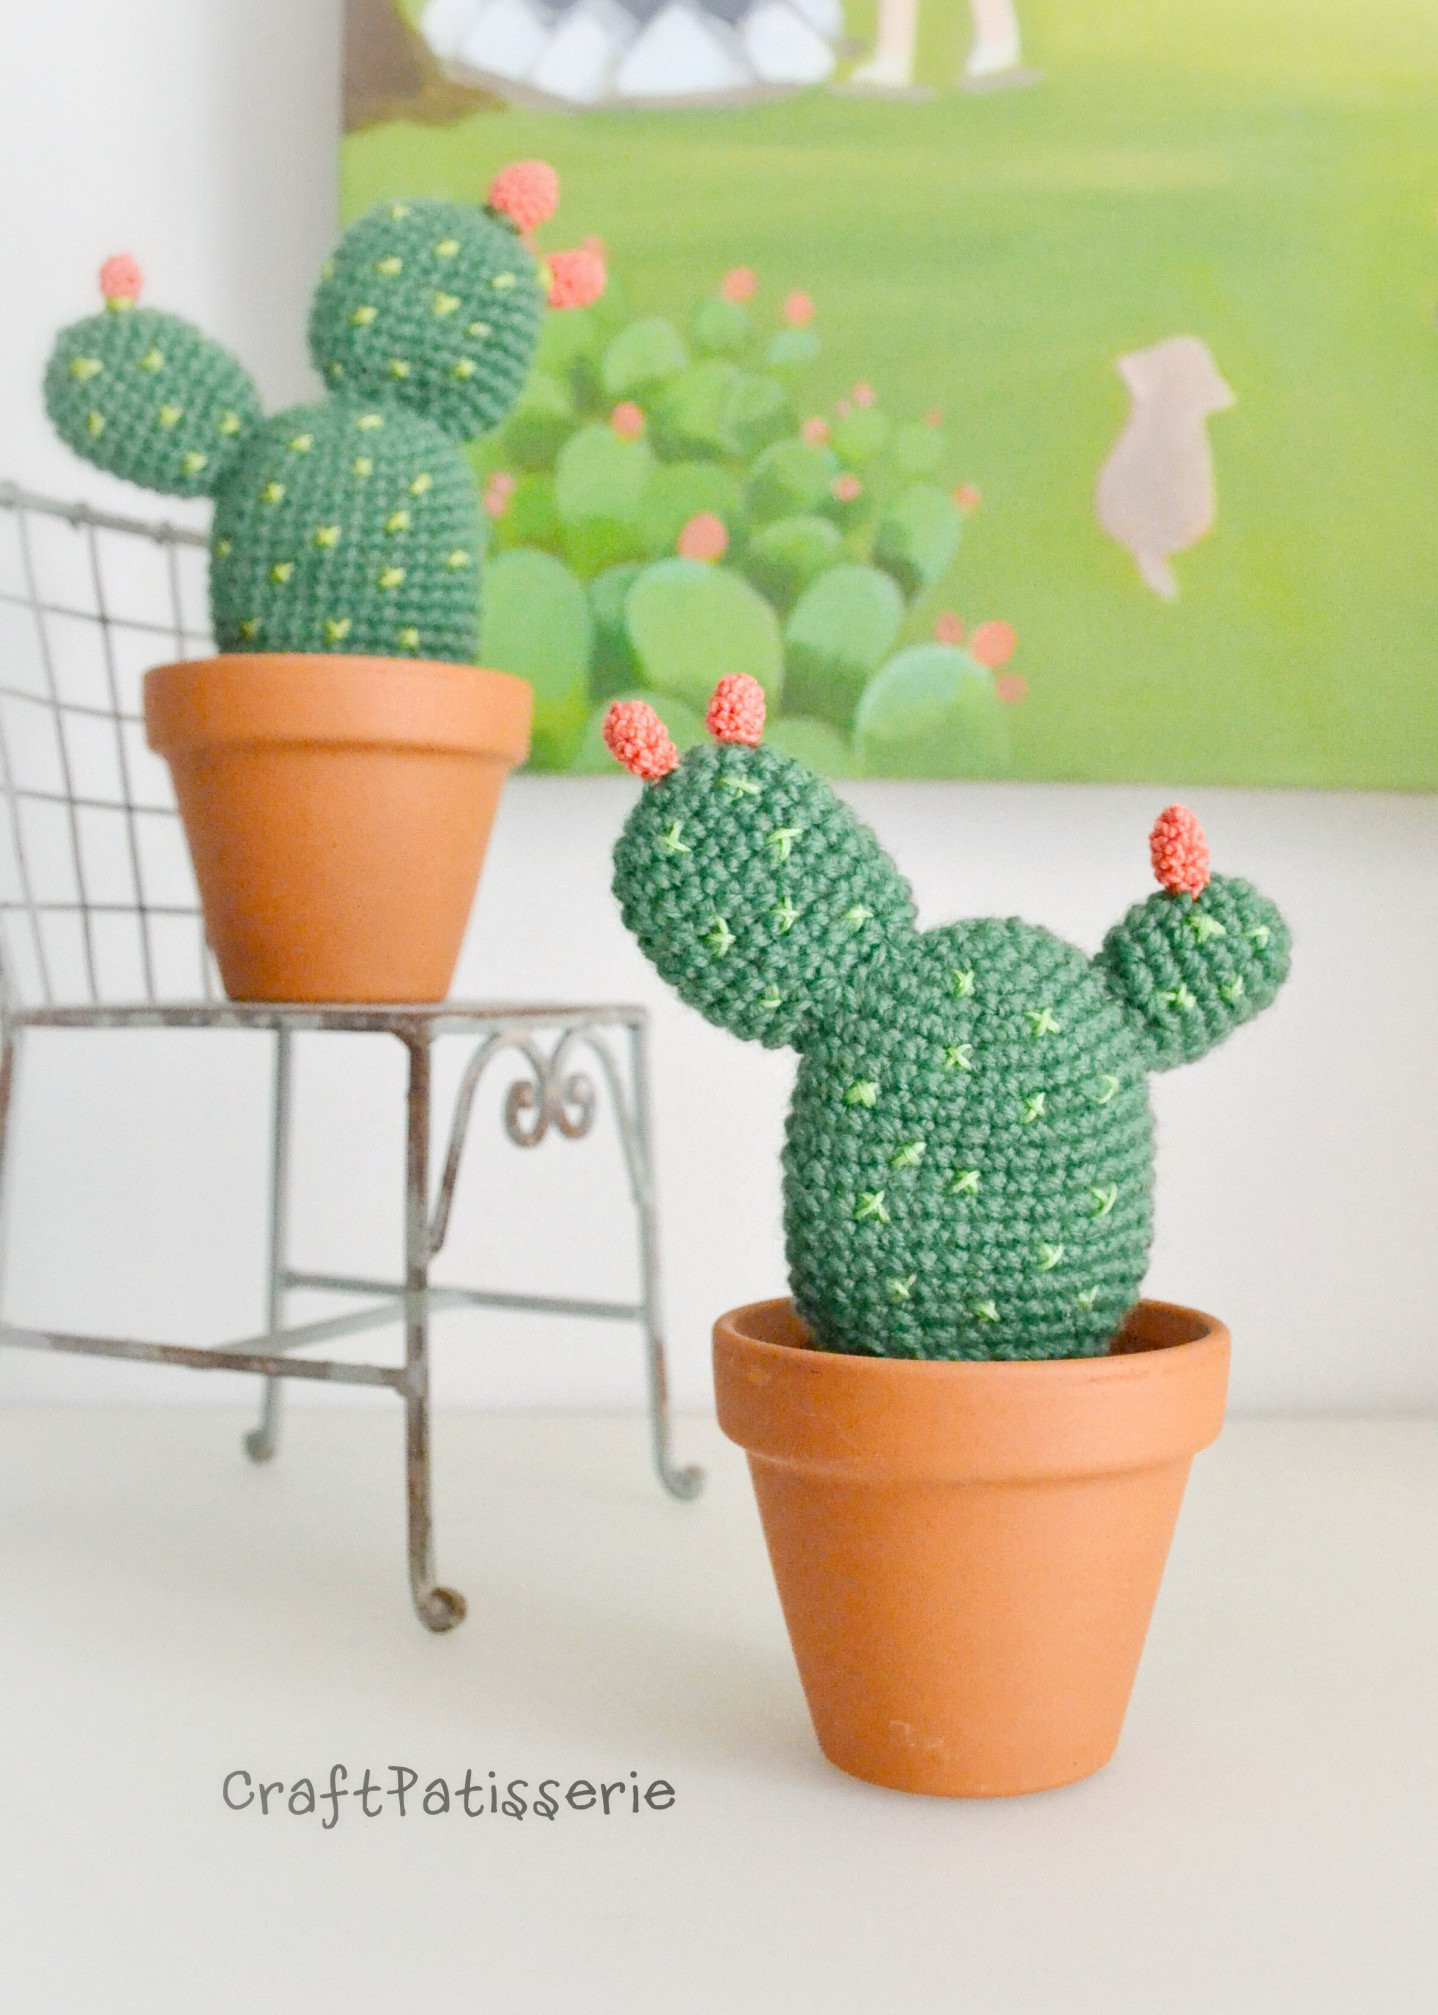 Crochet Cactus Pattern Elegant 10 Desert Cactus Amigurumi Crochet Patterns Look Of Lovely 40 Models Crochet Cactus Pattern